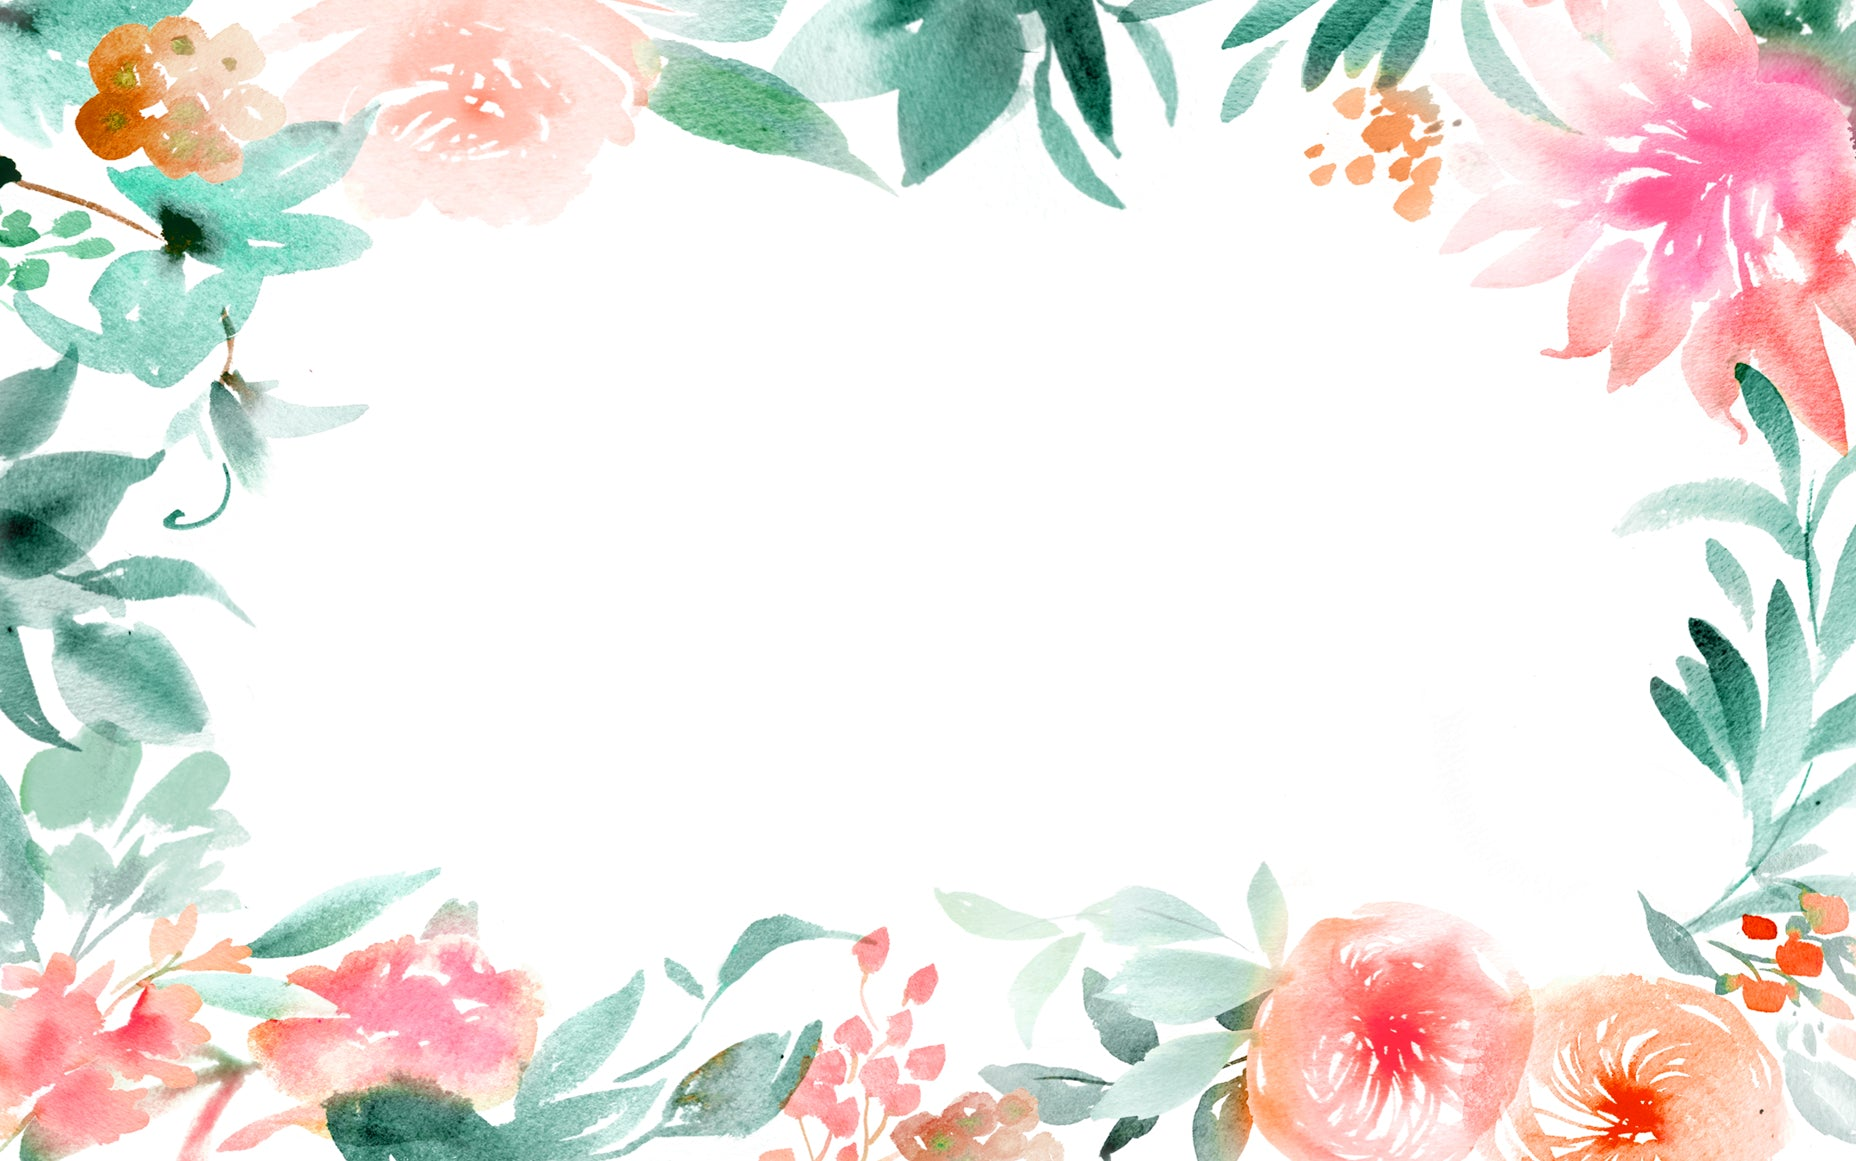 Watercolor Floral Boarder by Julie Song.php